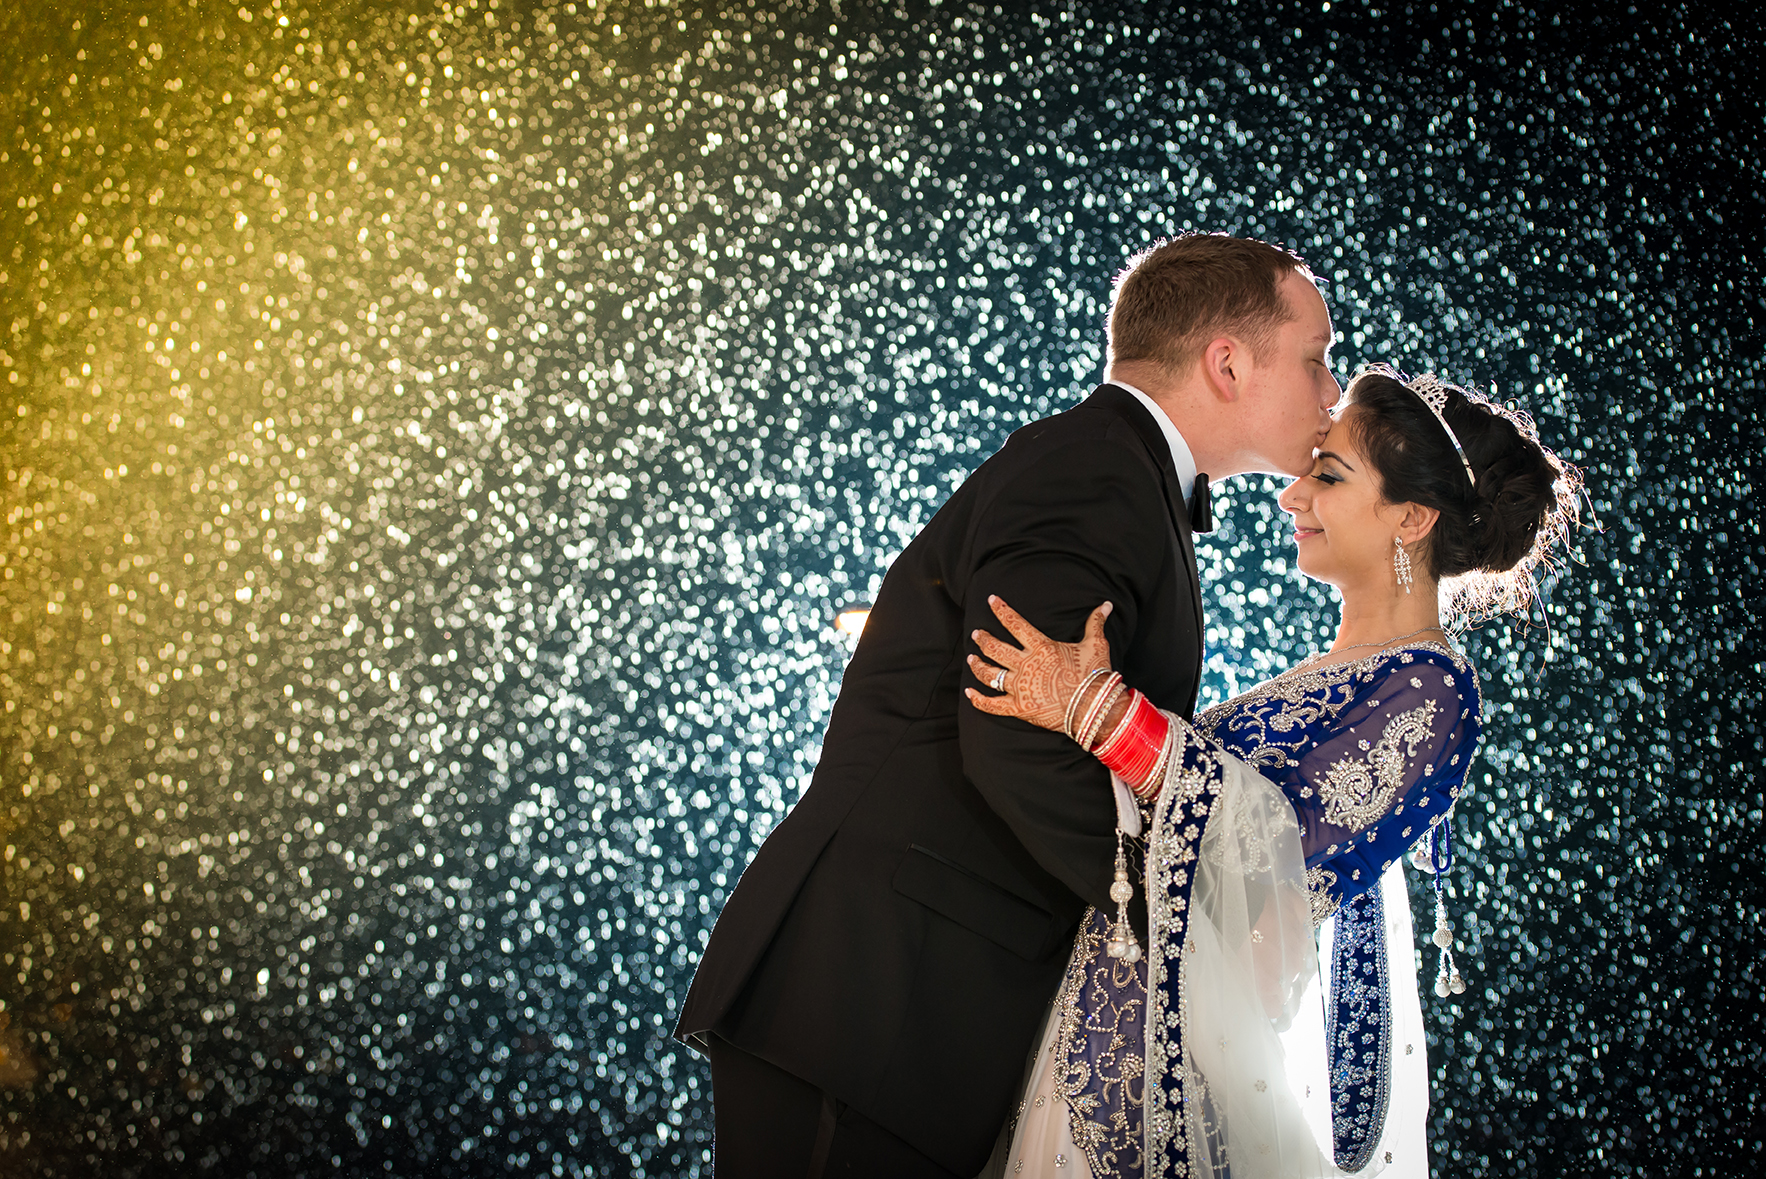 south_asian_wedding_photography_dhoom_studio_new_york26 SOUTH ASIAN WEDDINGS